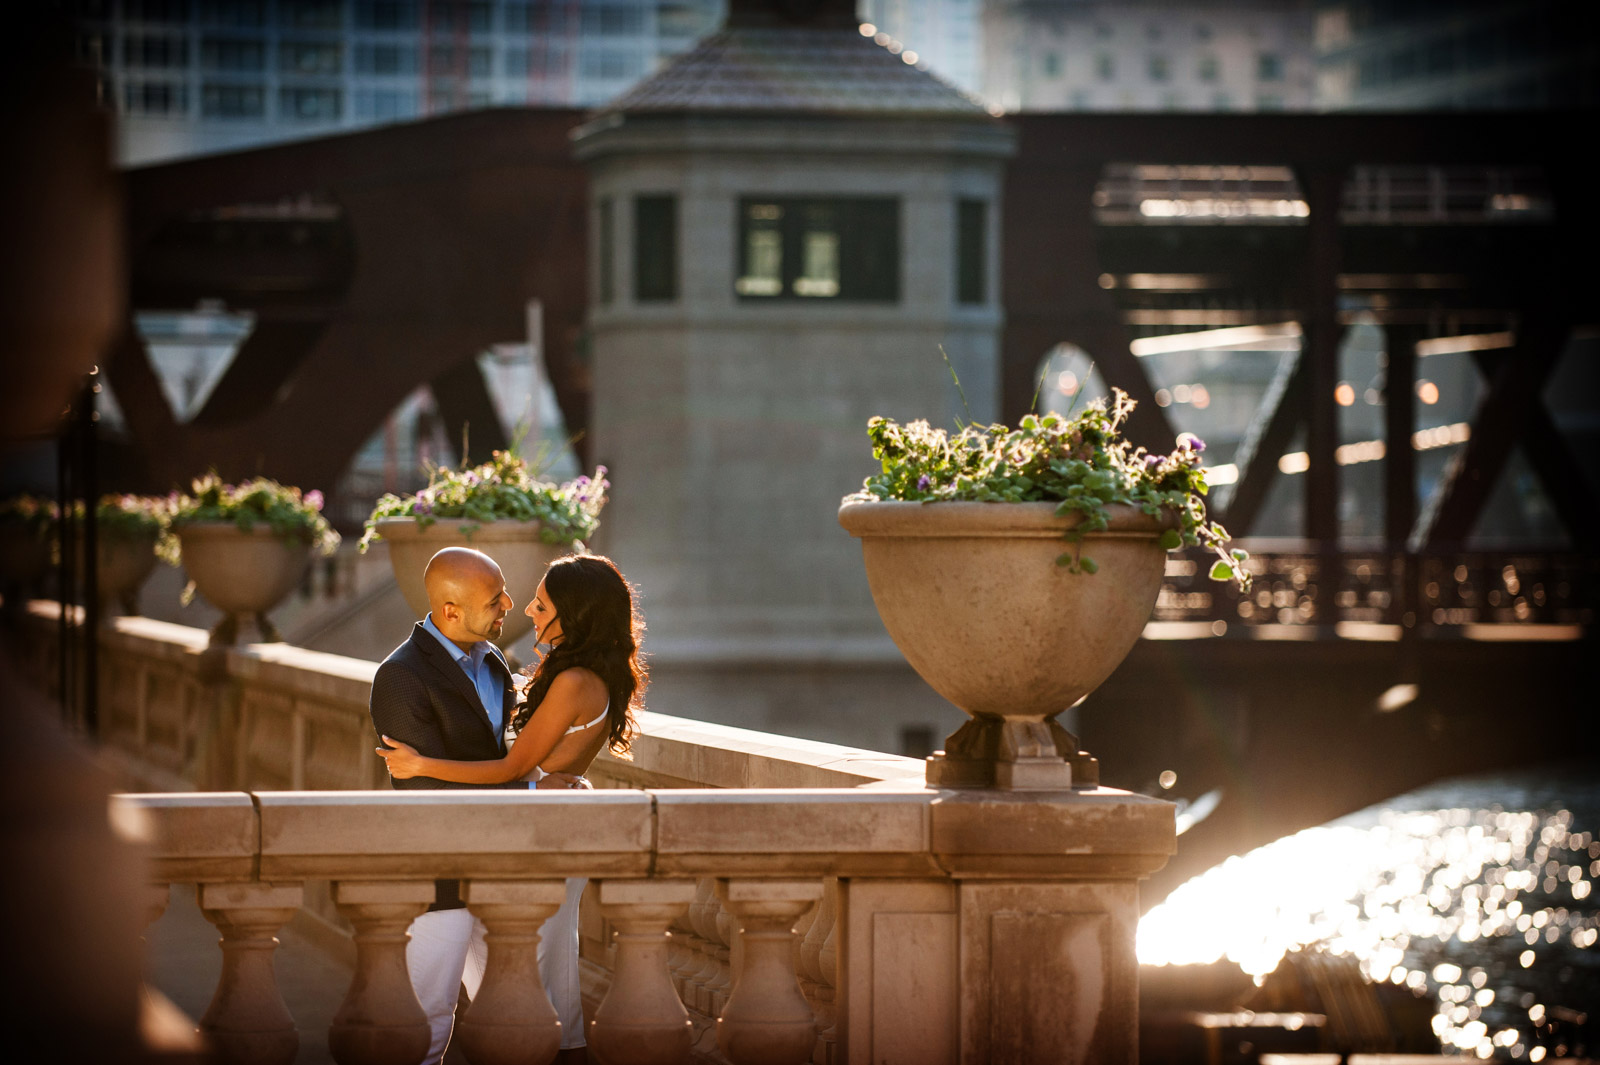 Engagement session in Chicago at sunset in the loop with El train and bridge in the background